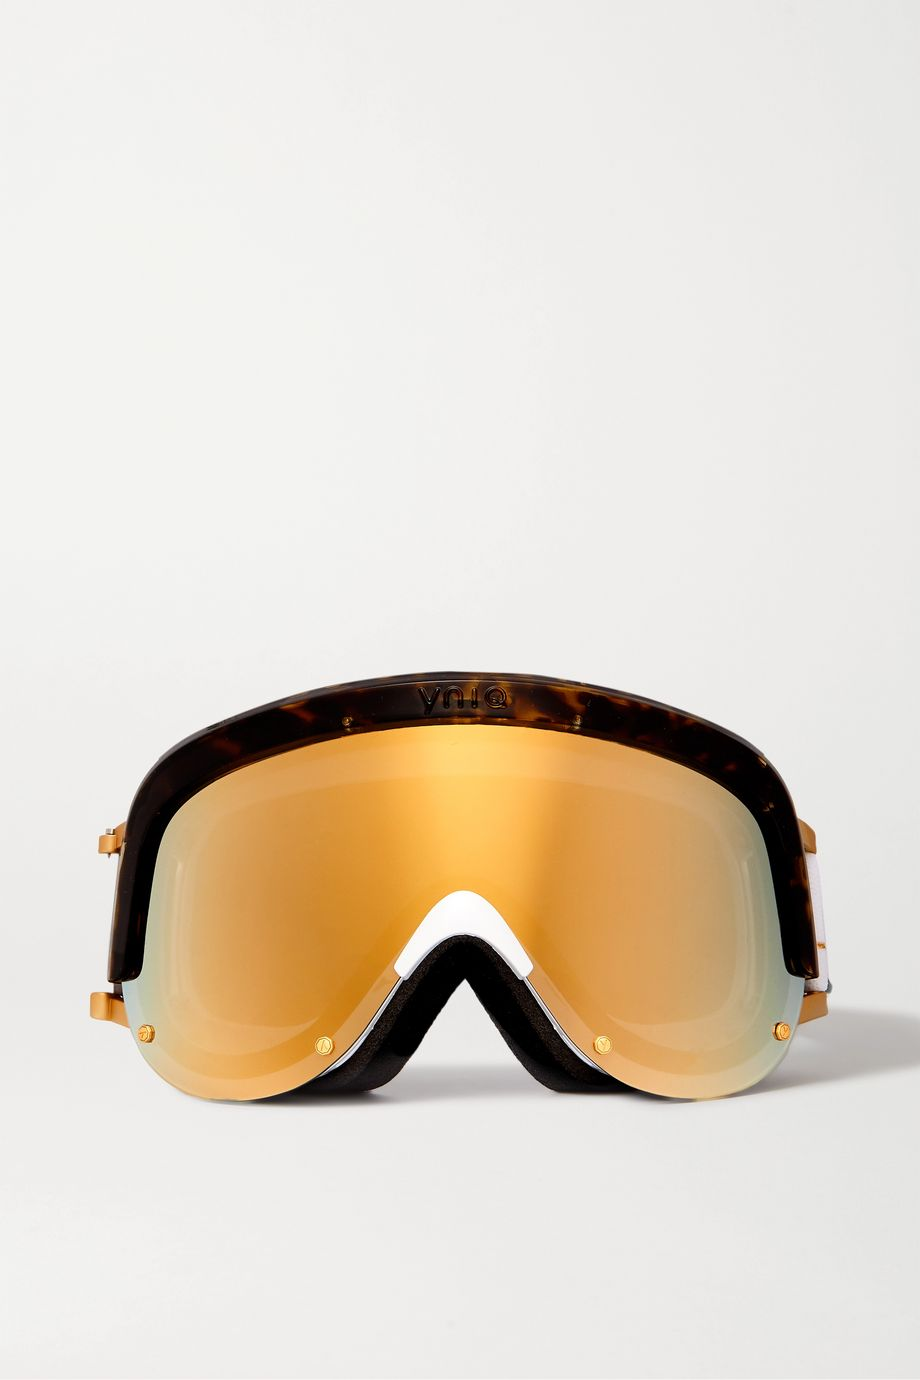 YNIQ Model One mirrored ski goggles